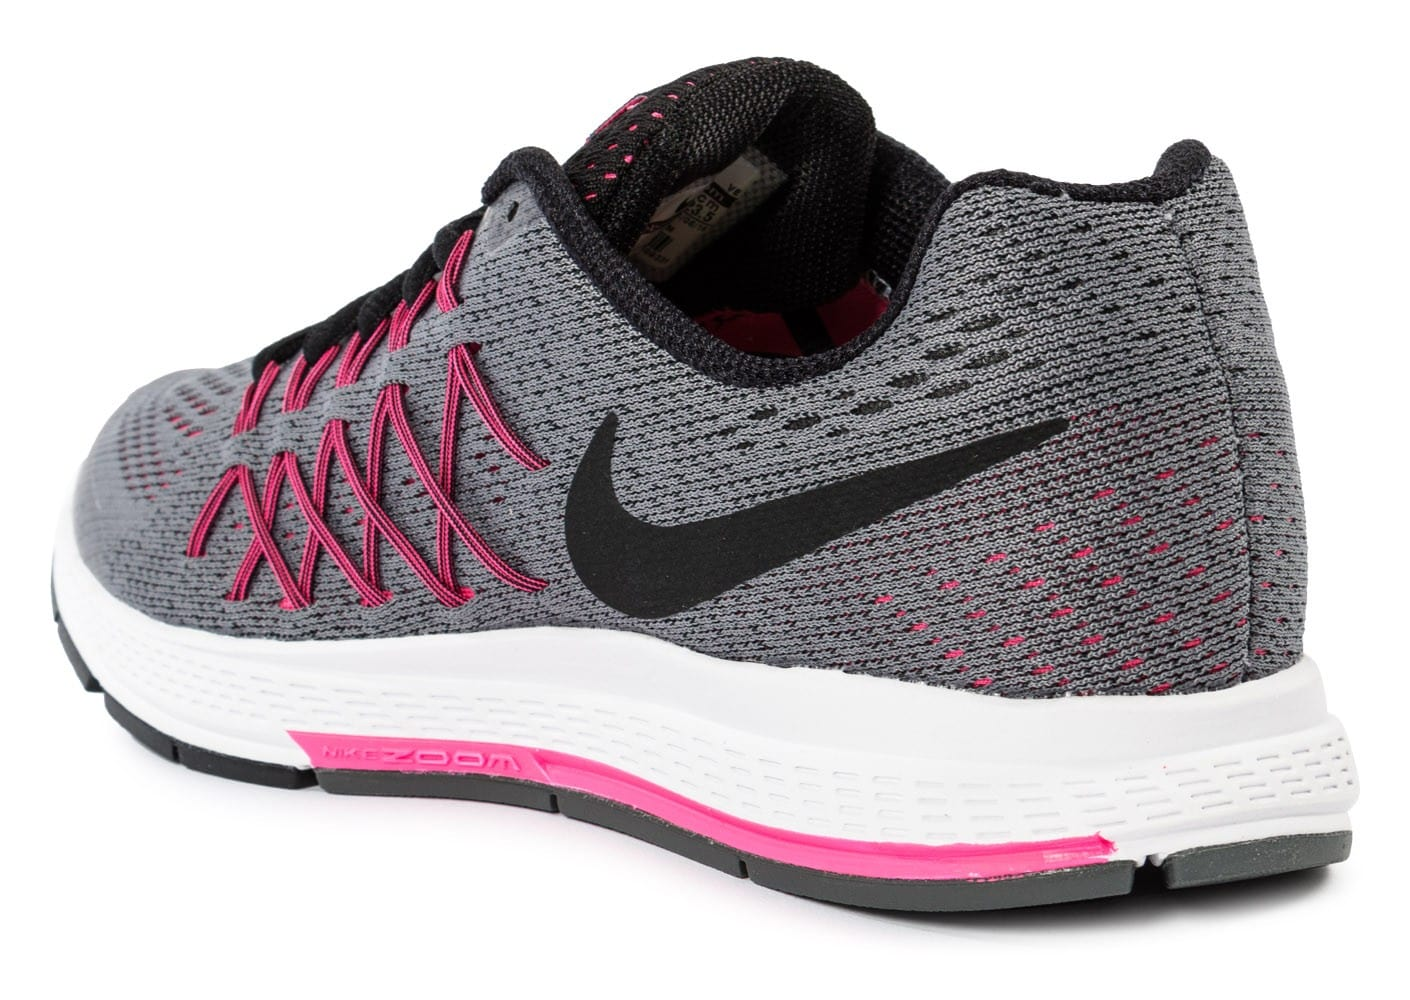 nouveau style 7d861 06bff Nike Zoom Pegasus 32 Junior grise - Chaussures Chaussures ...